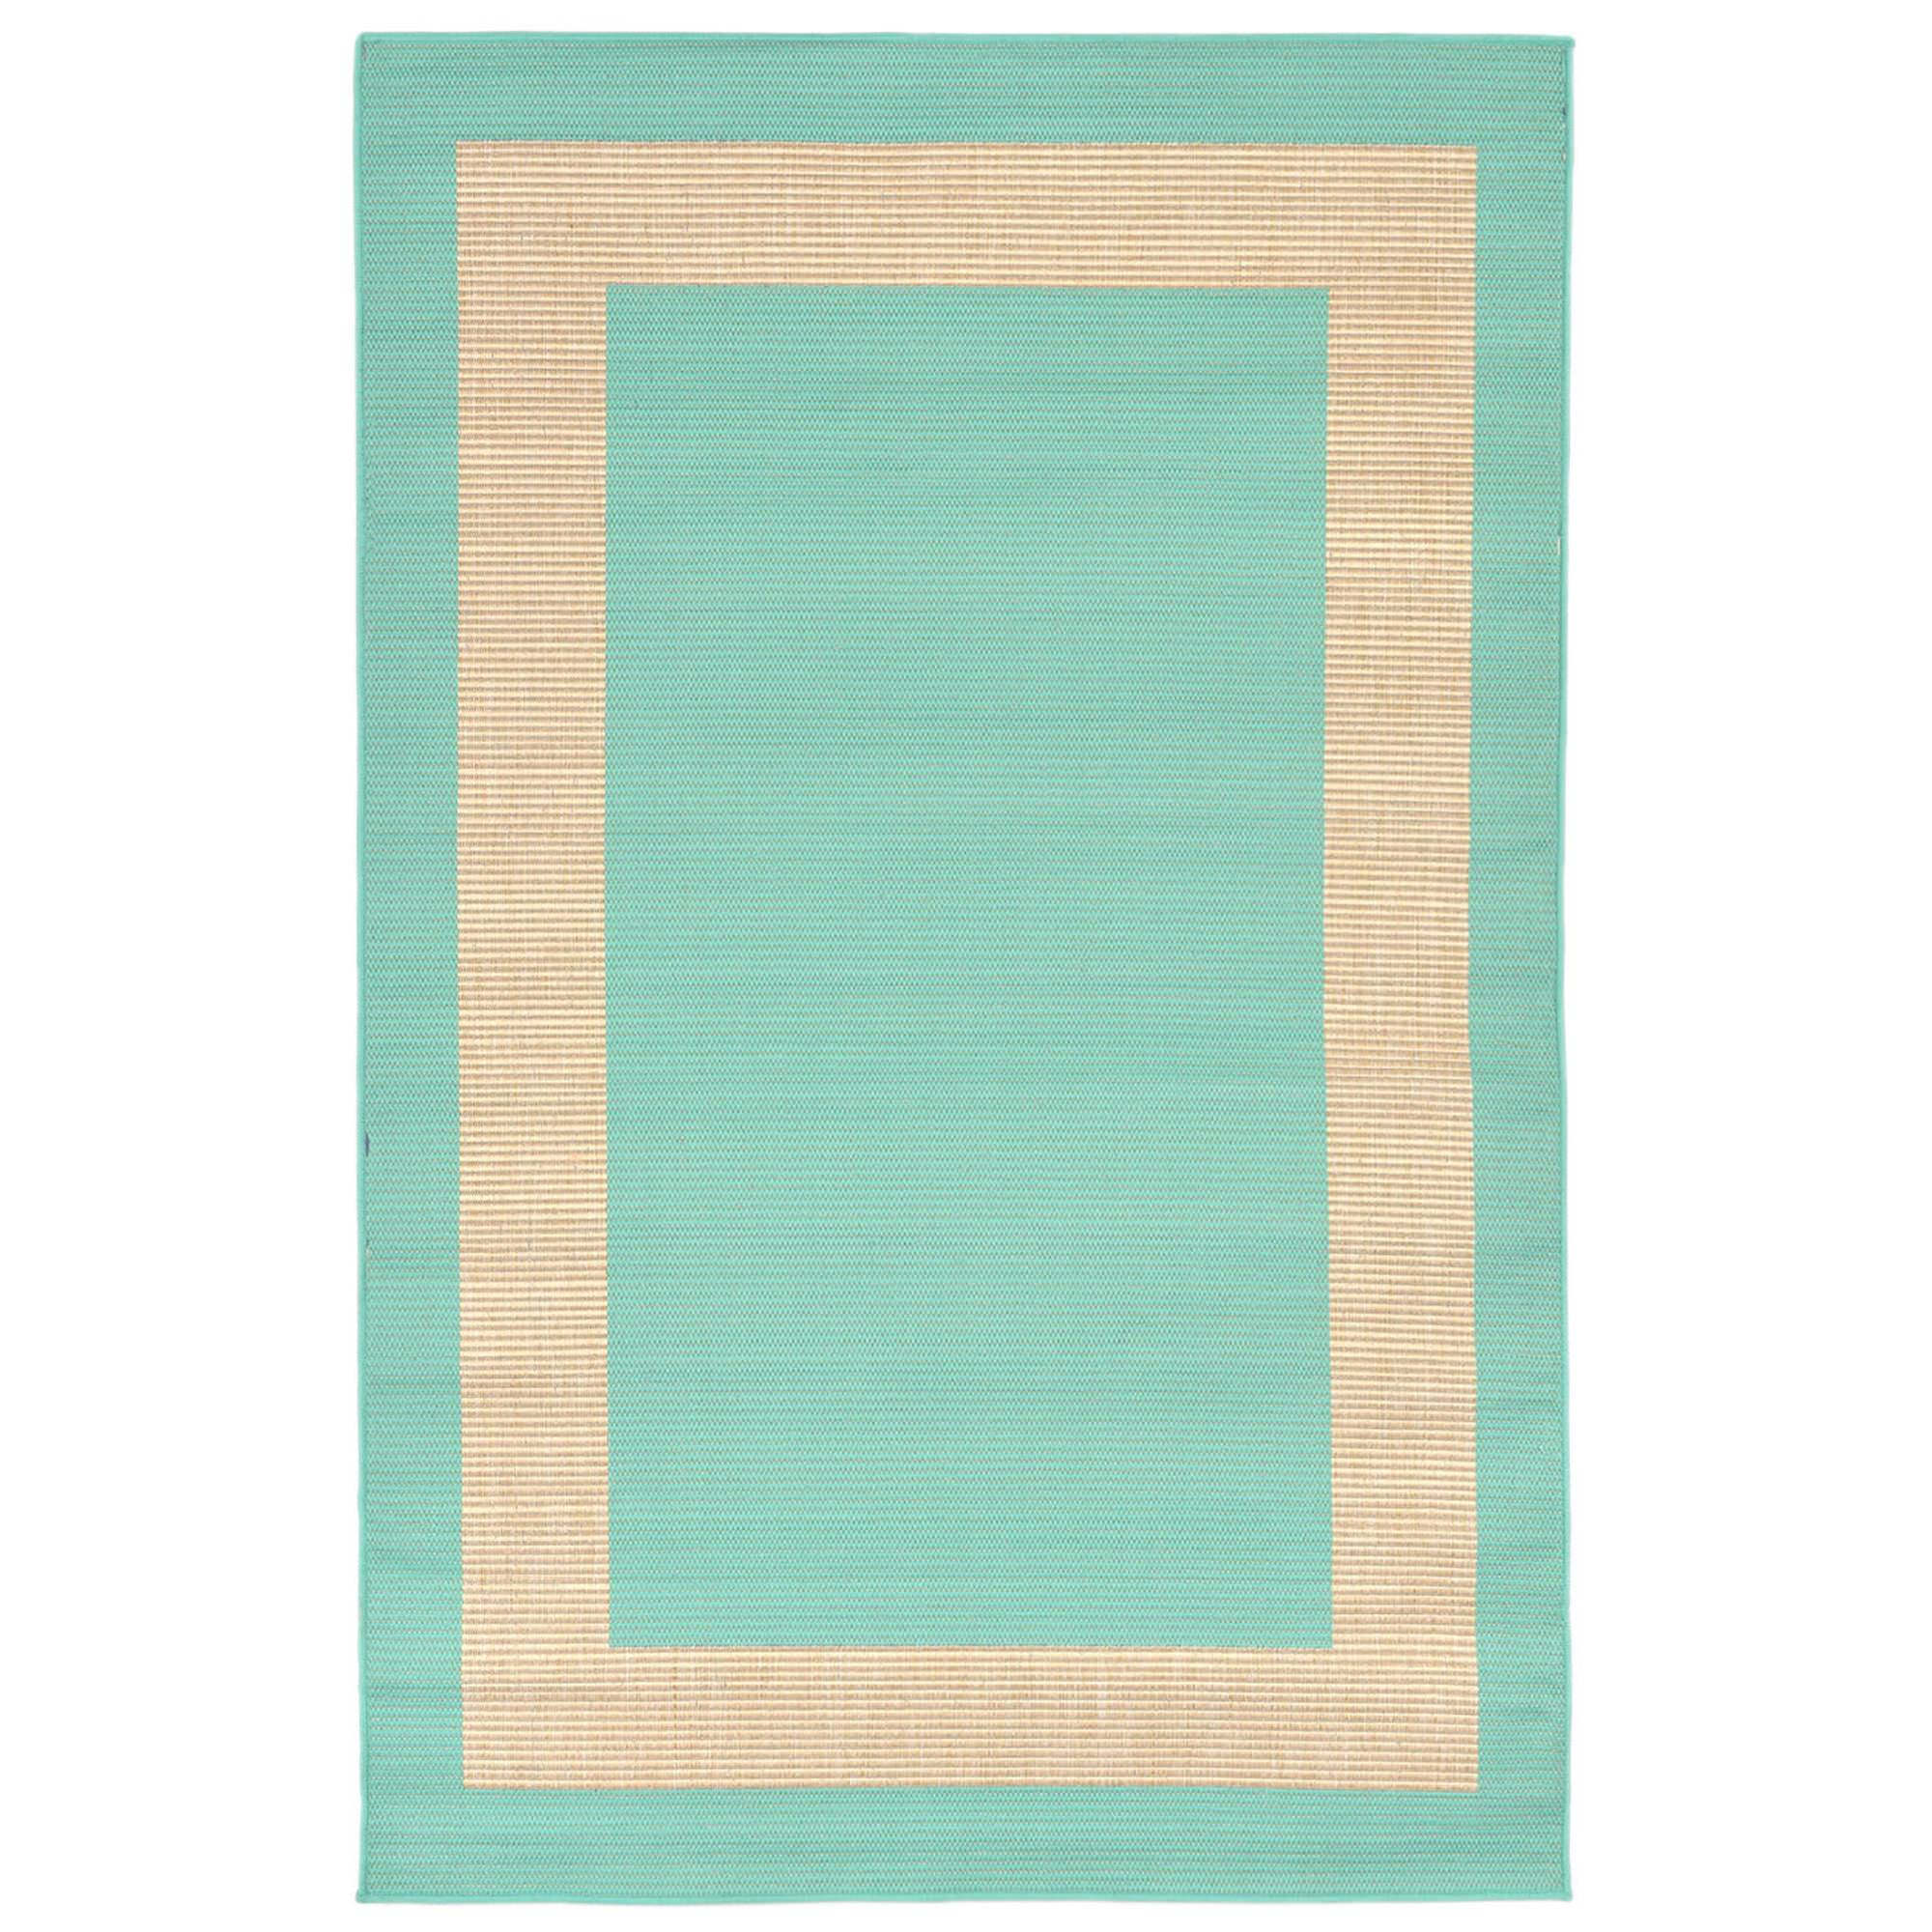 Terrace Border Turquoise Outdoor Rug